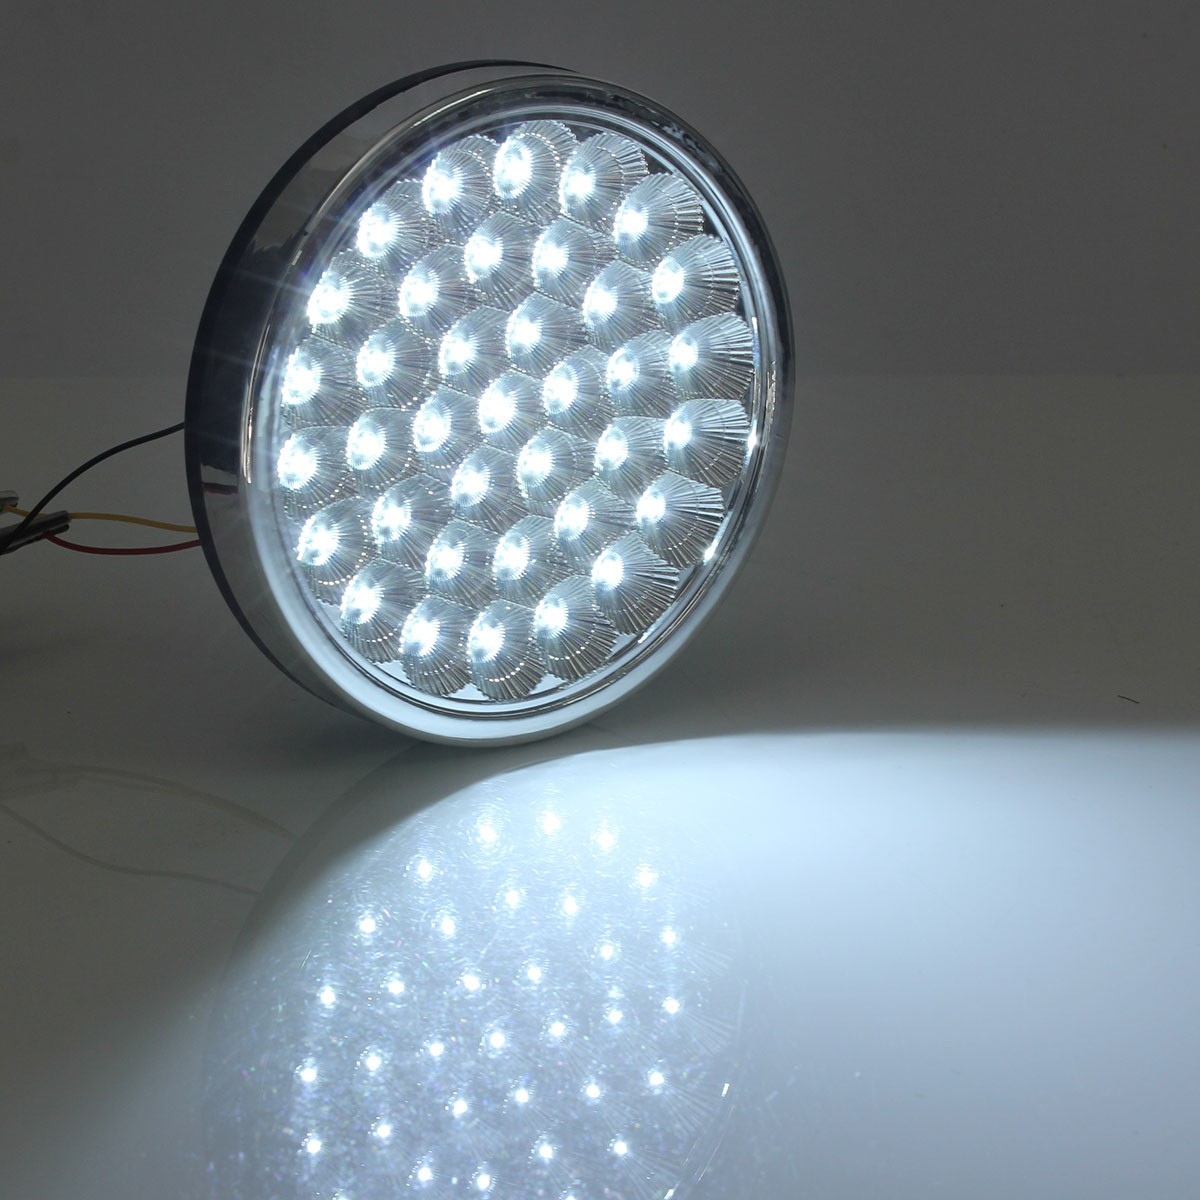 12v 37 Led White Car Interior Round Dome Roof Ceiling Door Light Lamp Taxi Truck Ebay